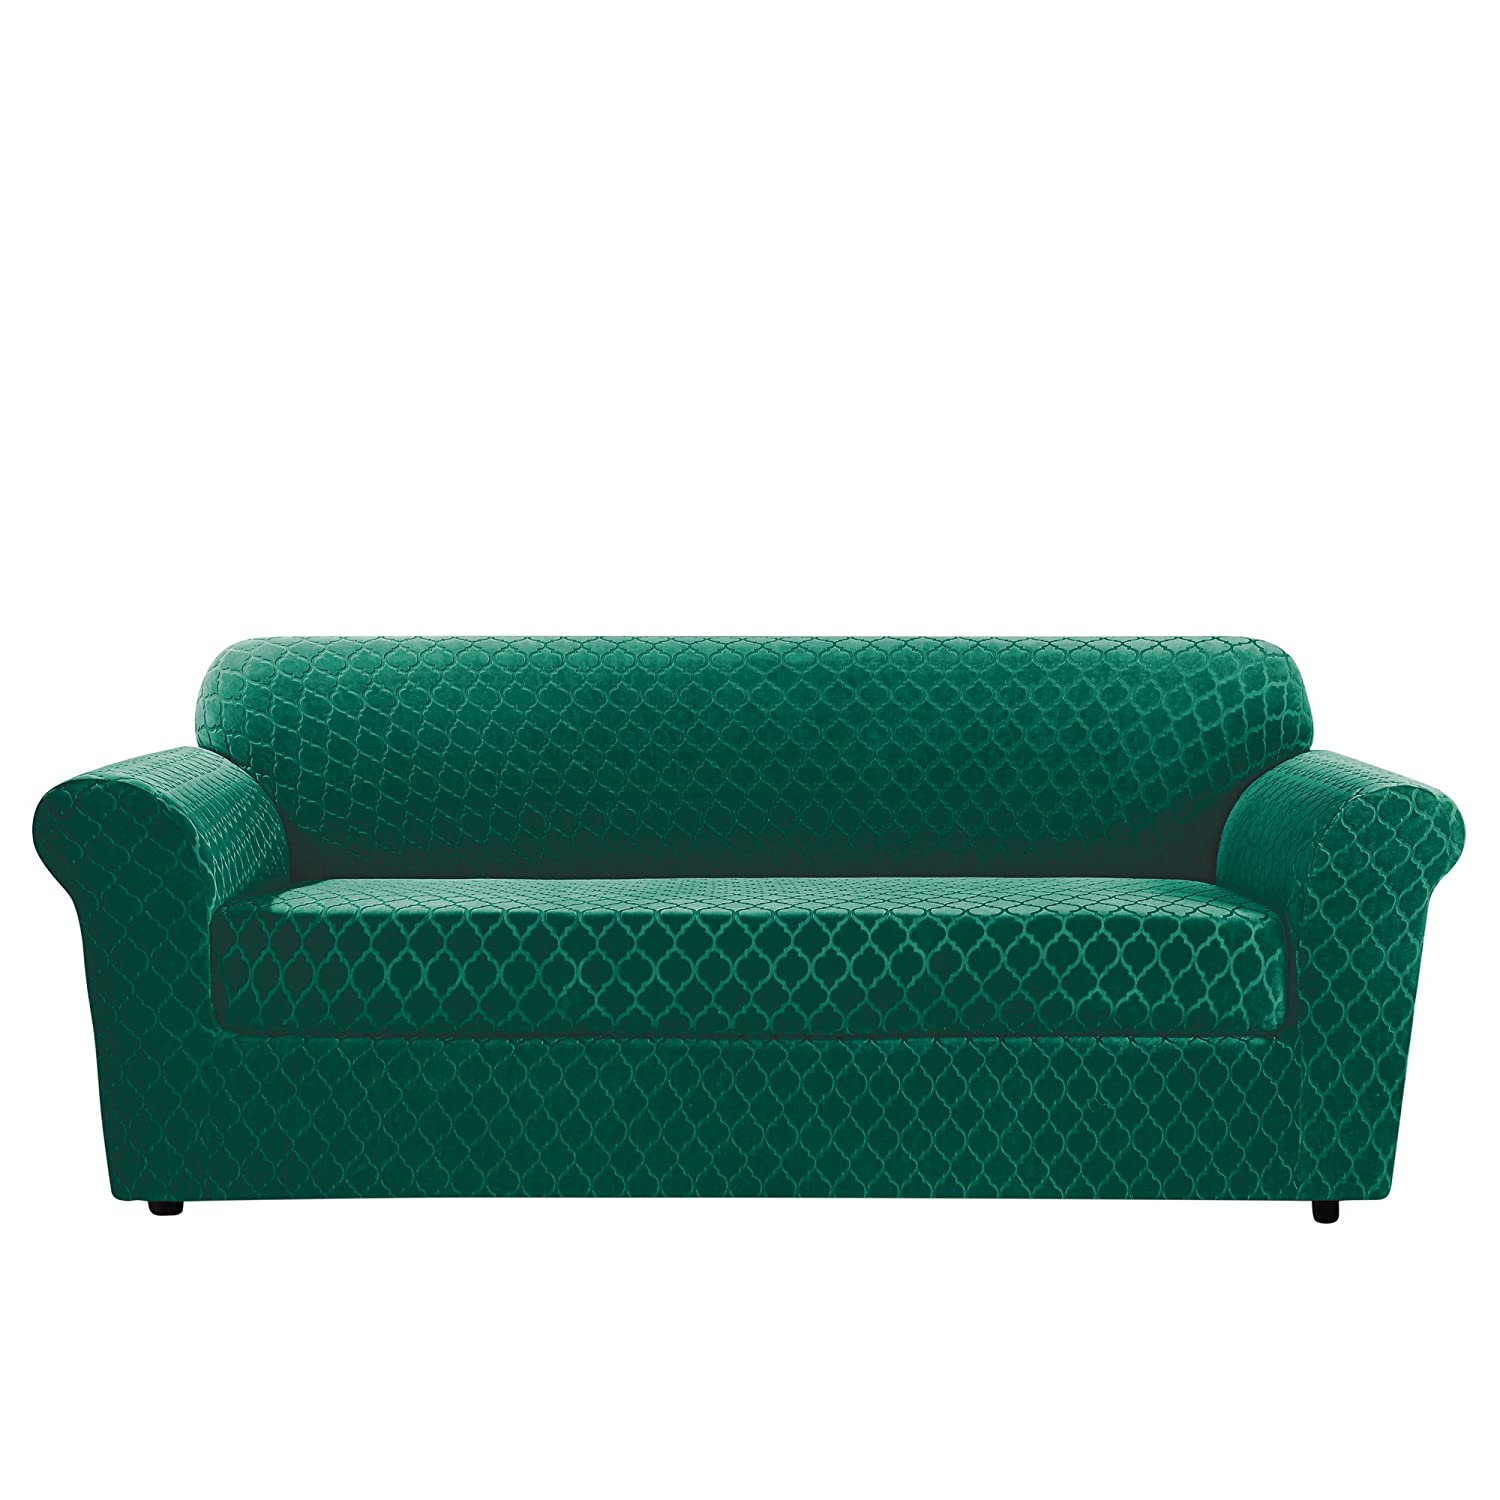 Surefit Sure Fit Stretch Grand Marrakesh Loveseat Slipcover (SF46915) (Emerald, Box Cushion Sofa)